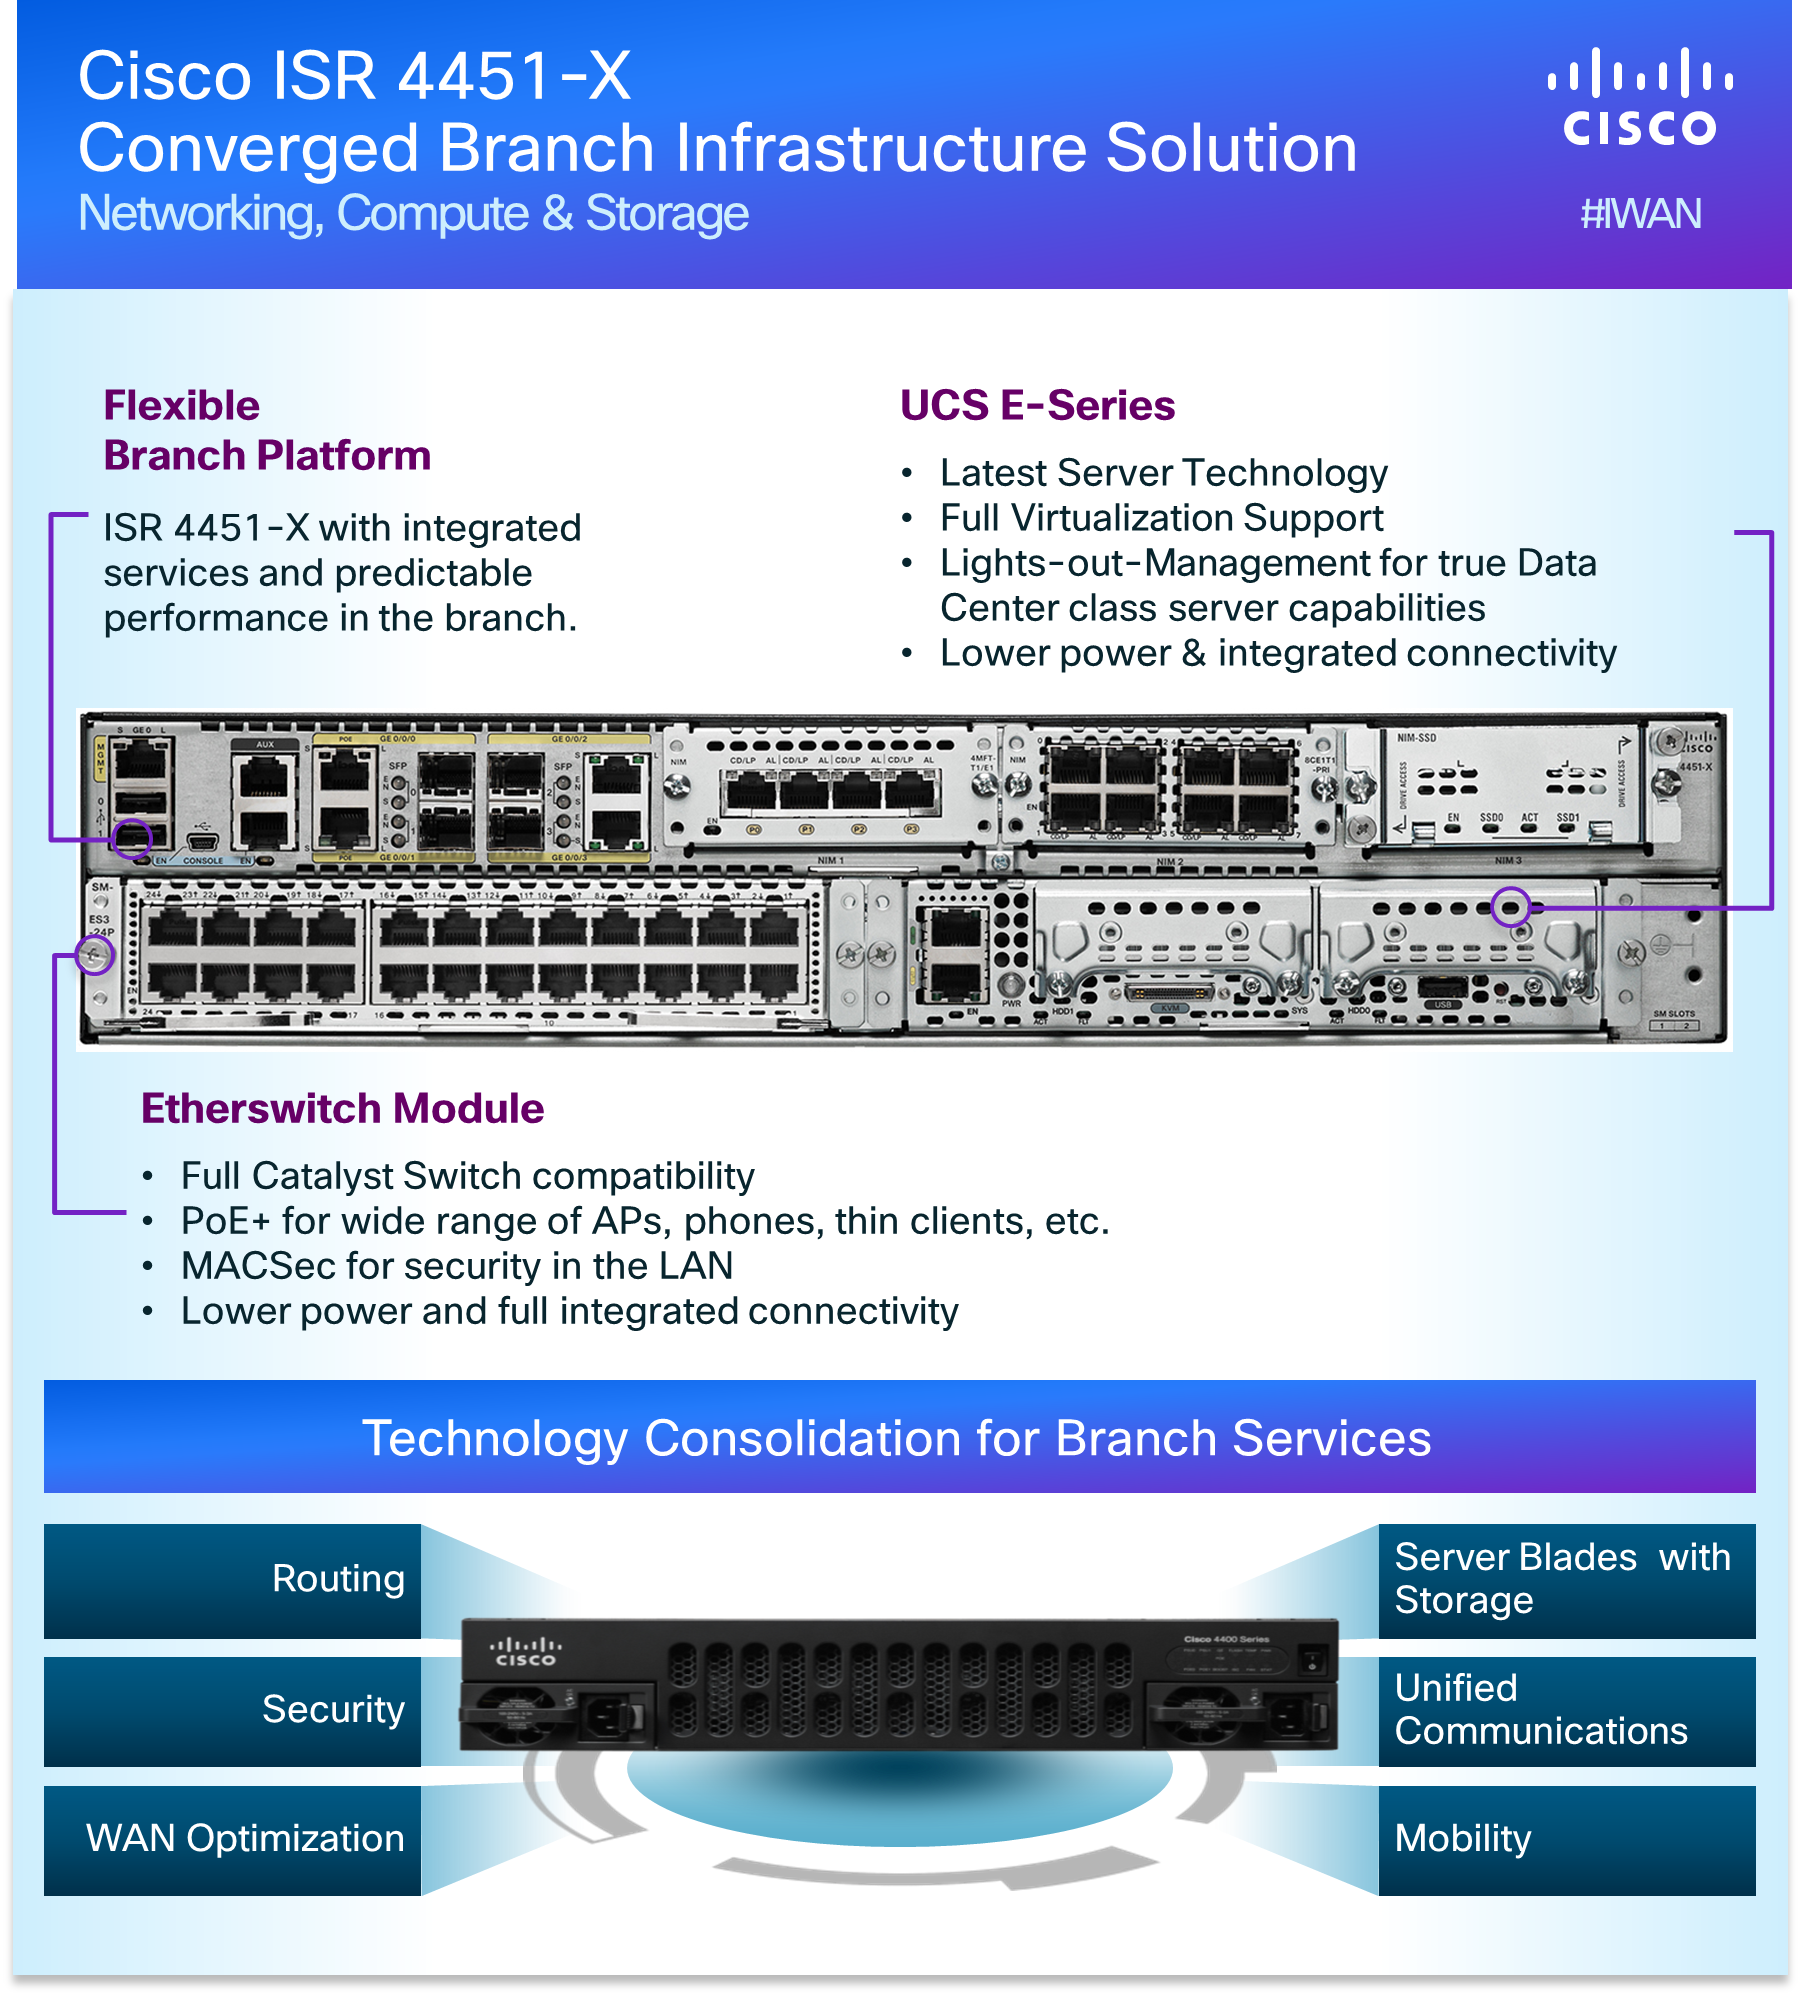 Infographic Best of Interop ISR 4451X Converged Branch Solution